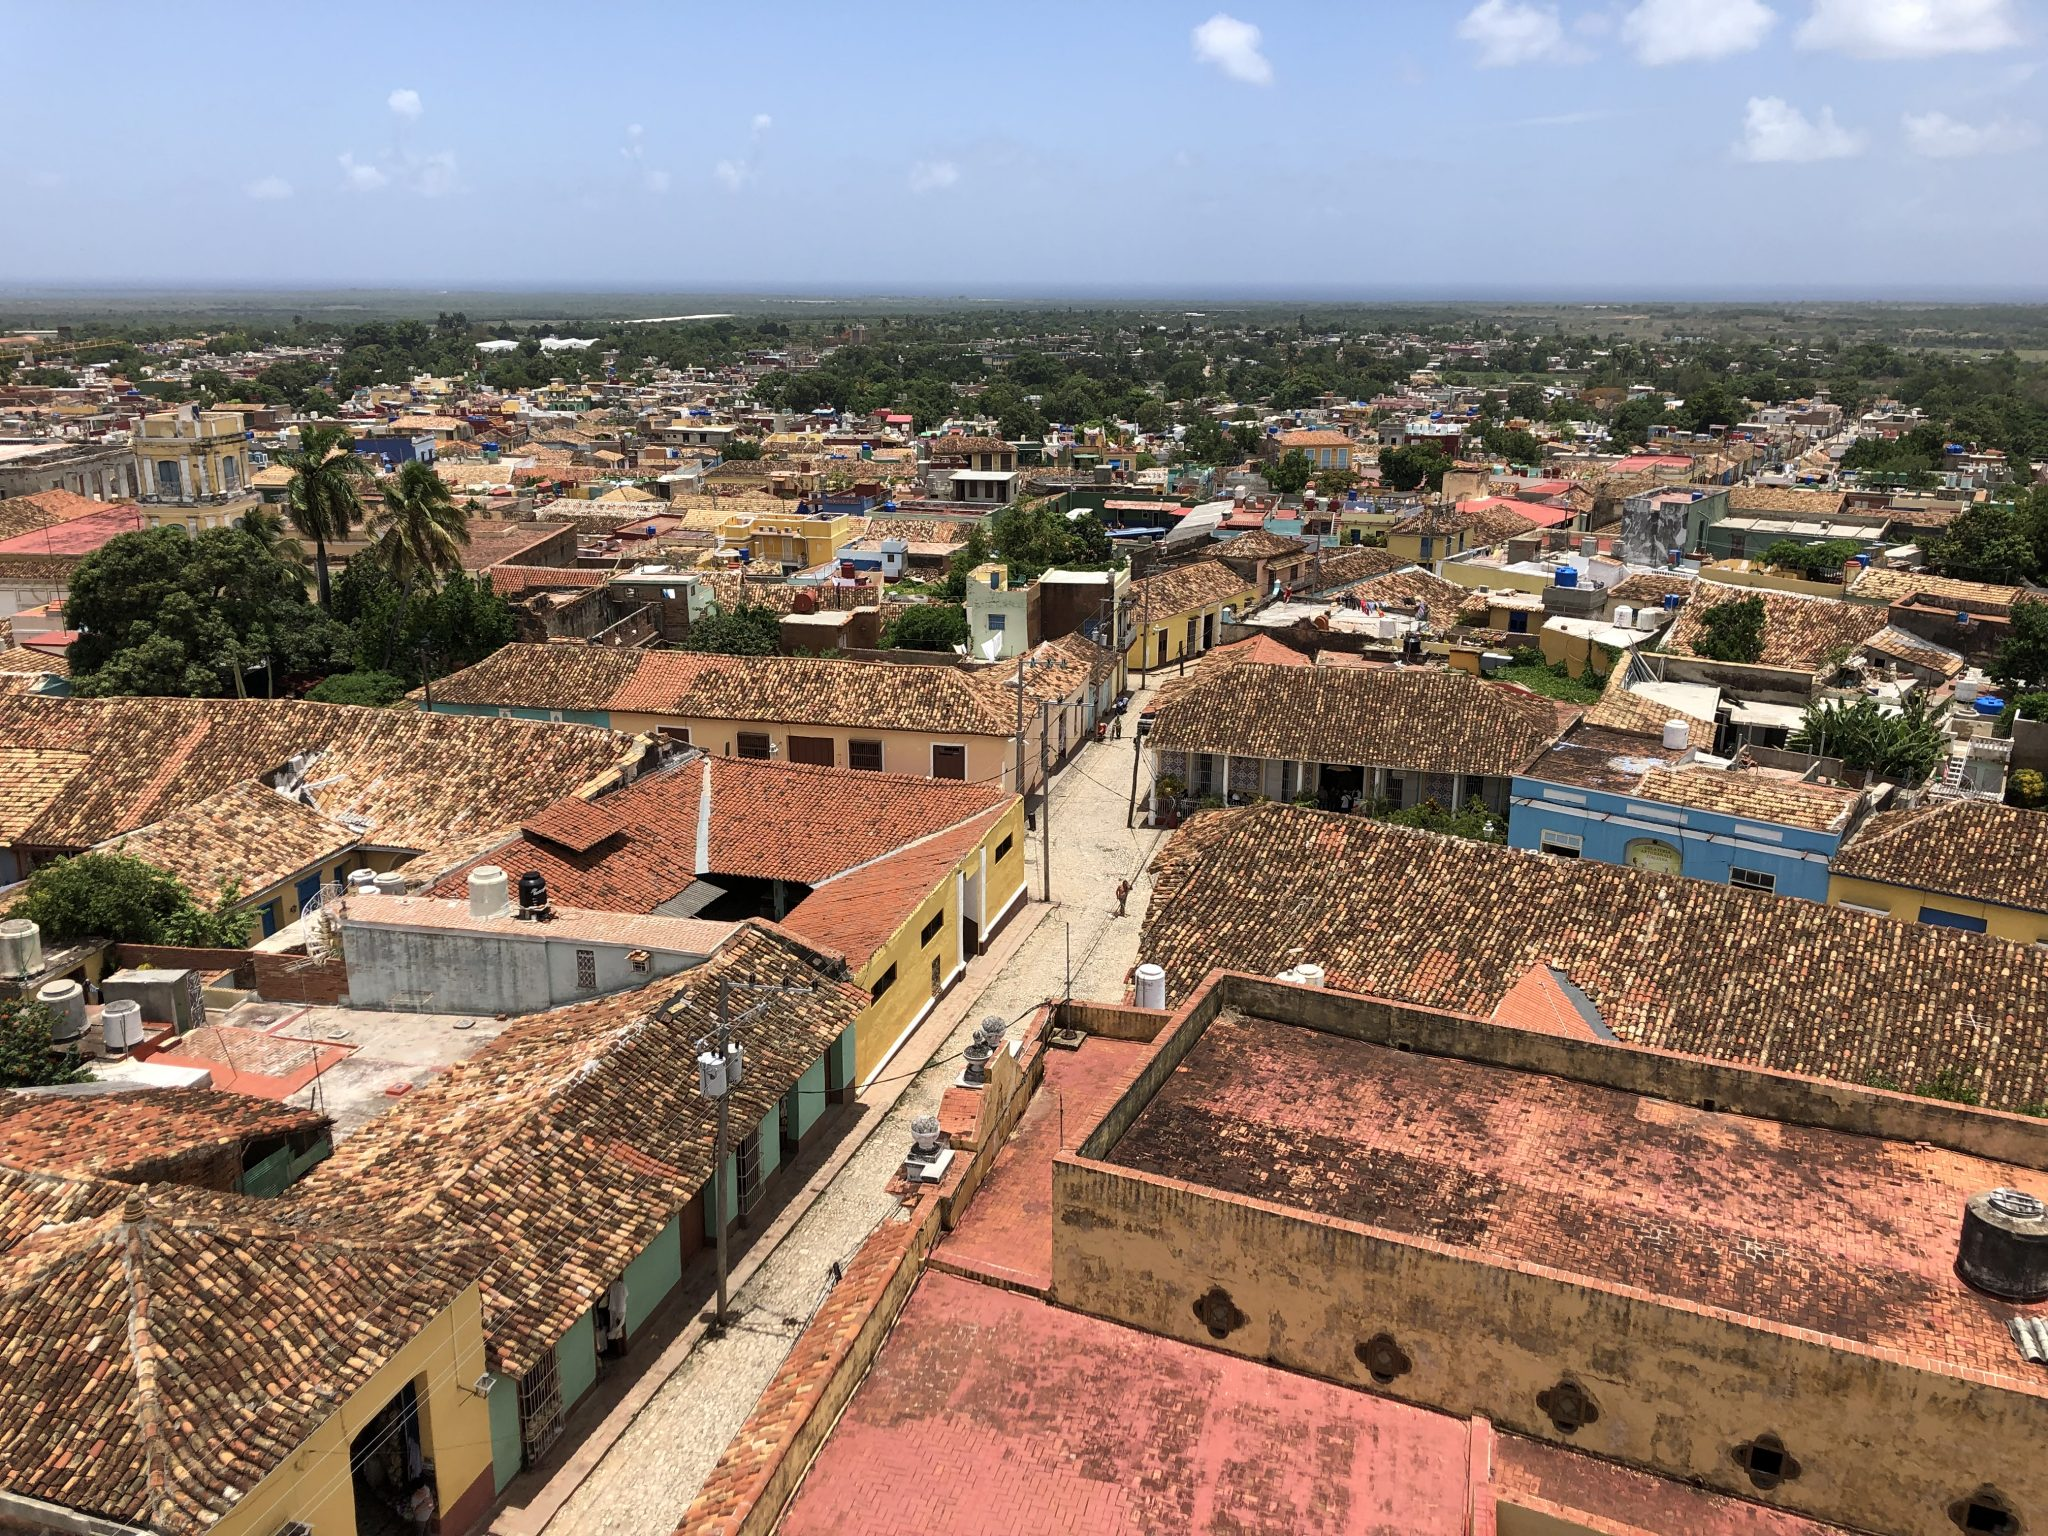 The beautifully tiled rooftops of Trinidad, Cuba.